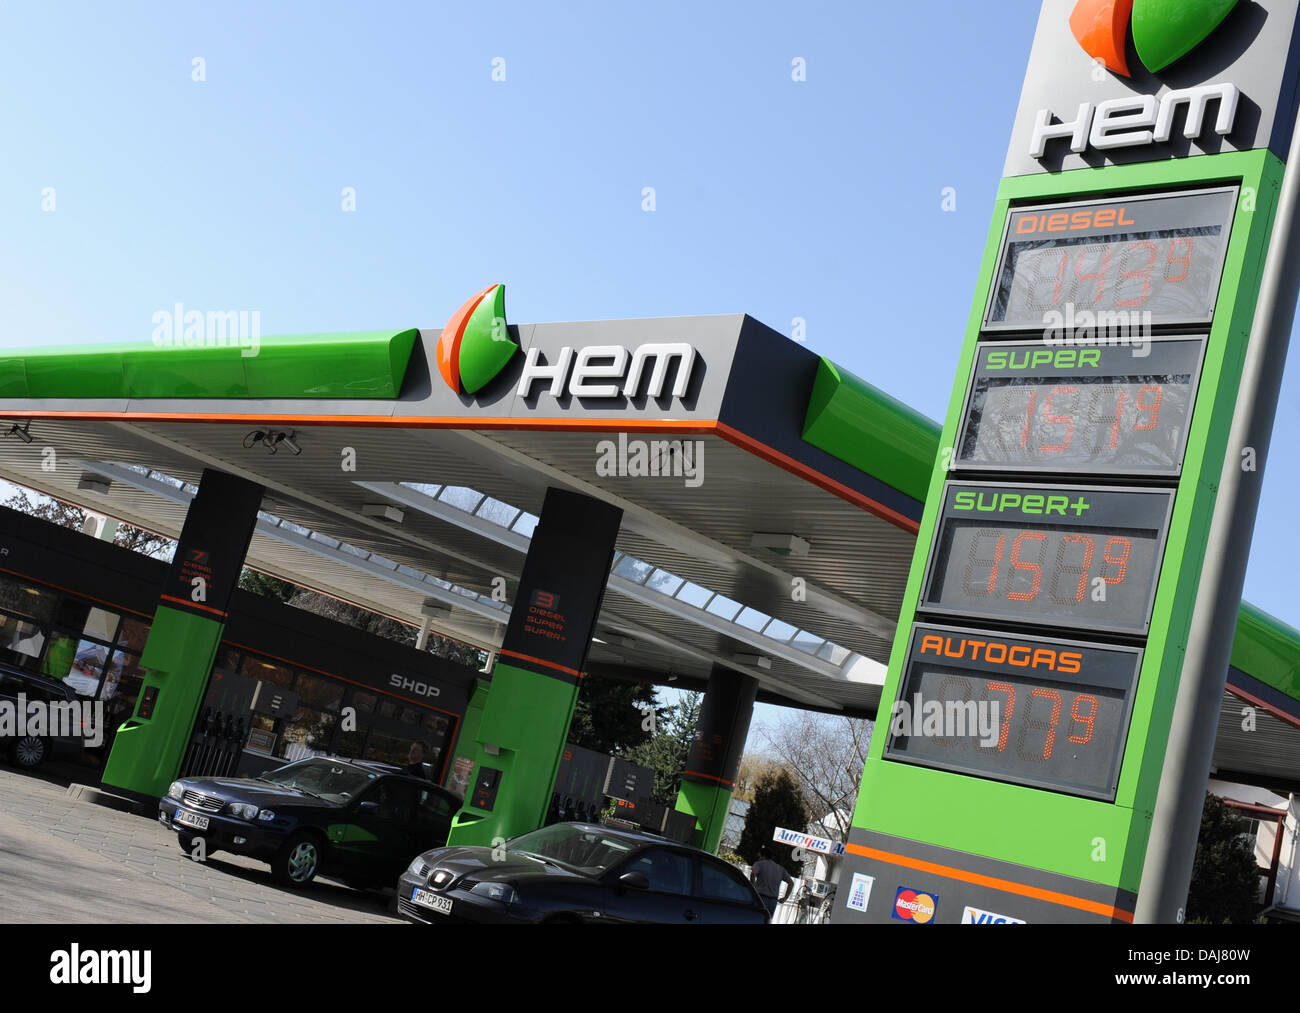 The picture shows a HEM petrol station in Hamburg, Germany on 24